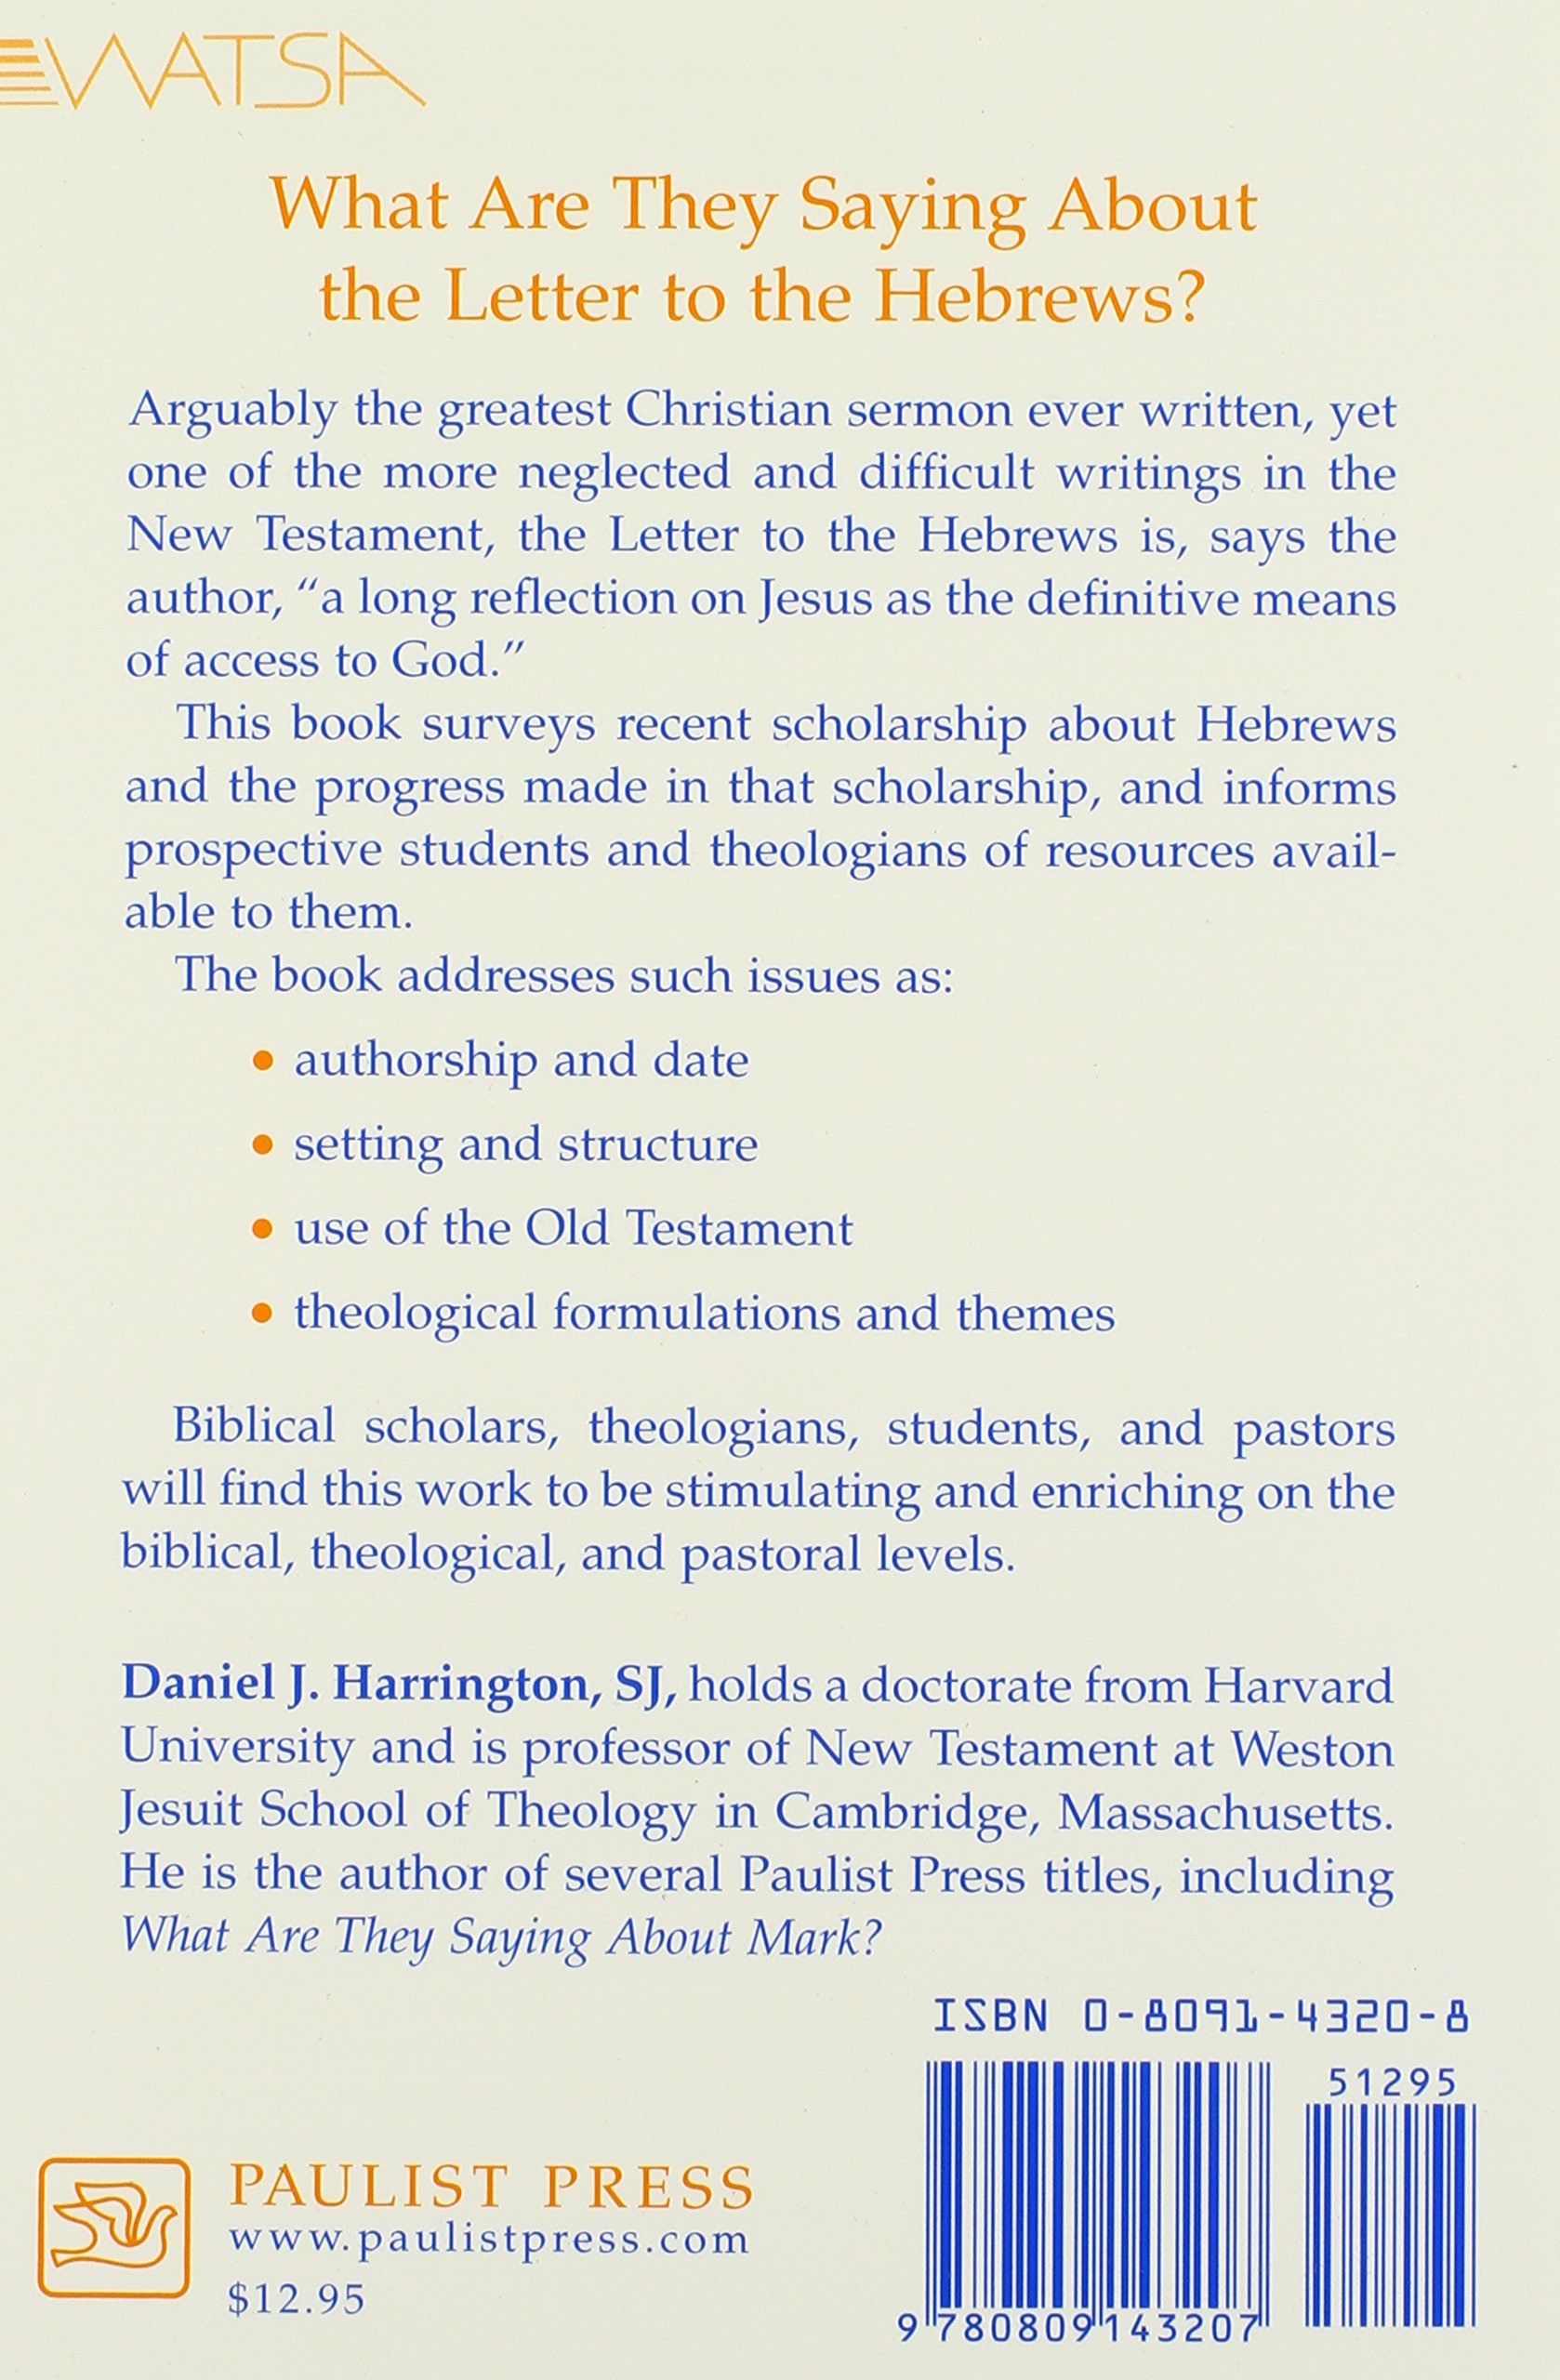 What are they saying about the letter to the hebrews watsa series daniel j harrington 9780809143207 amazon com books